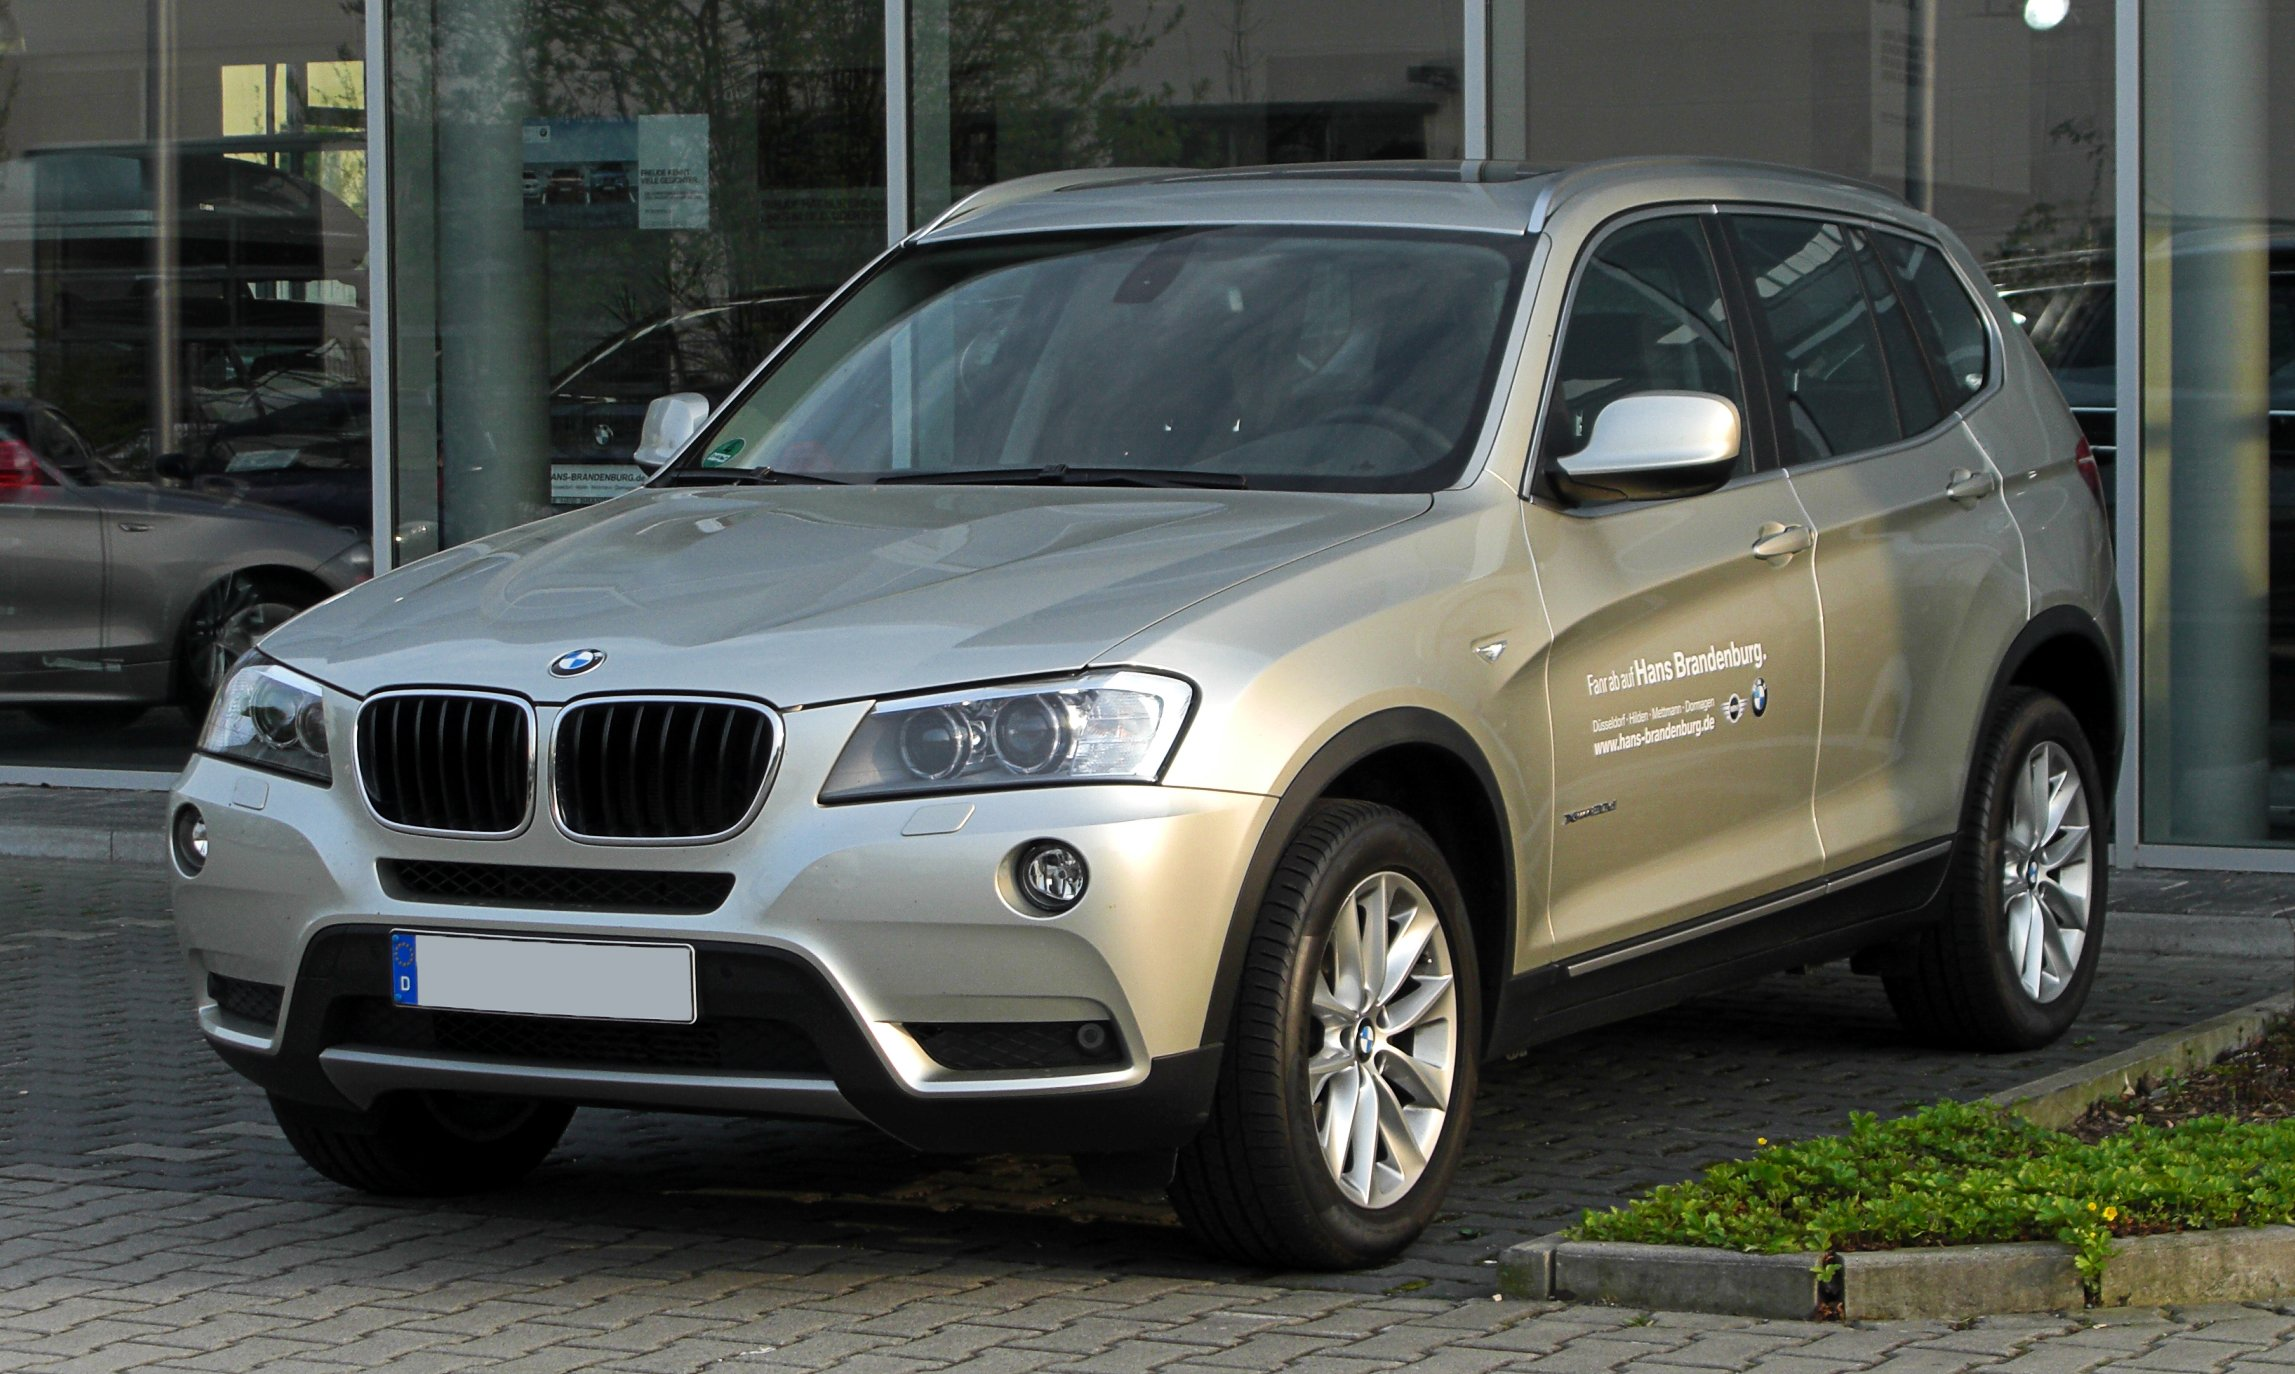 bmw x3 images #7